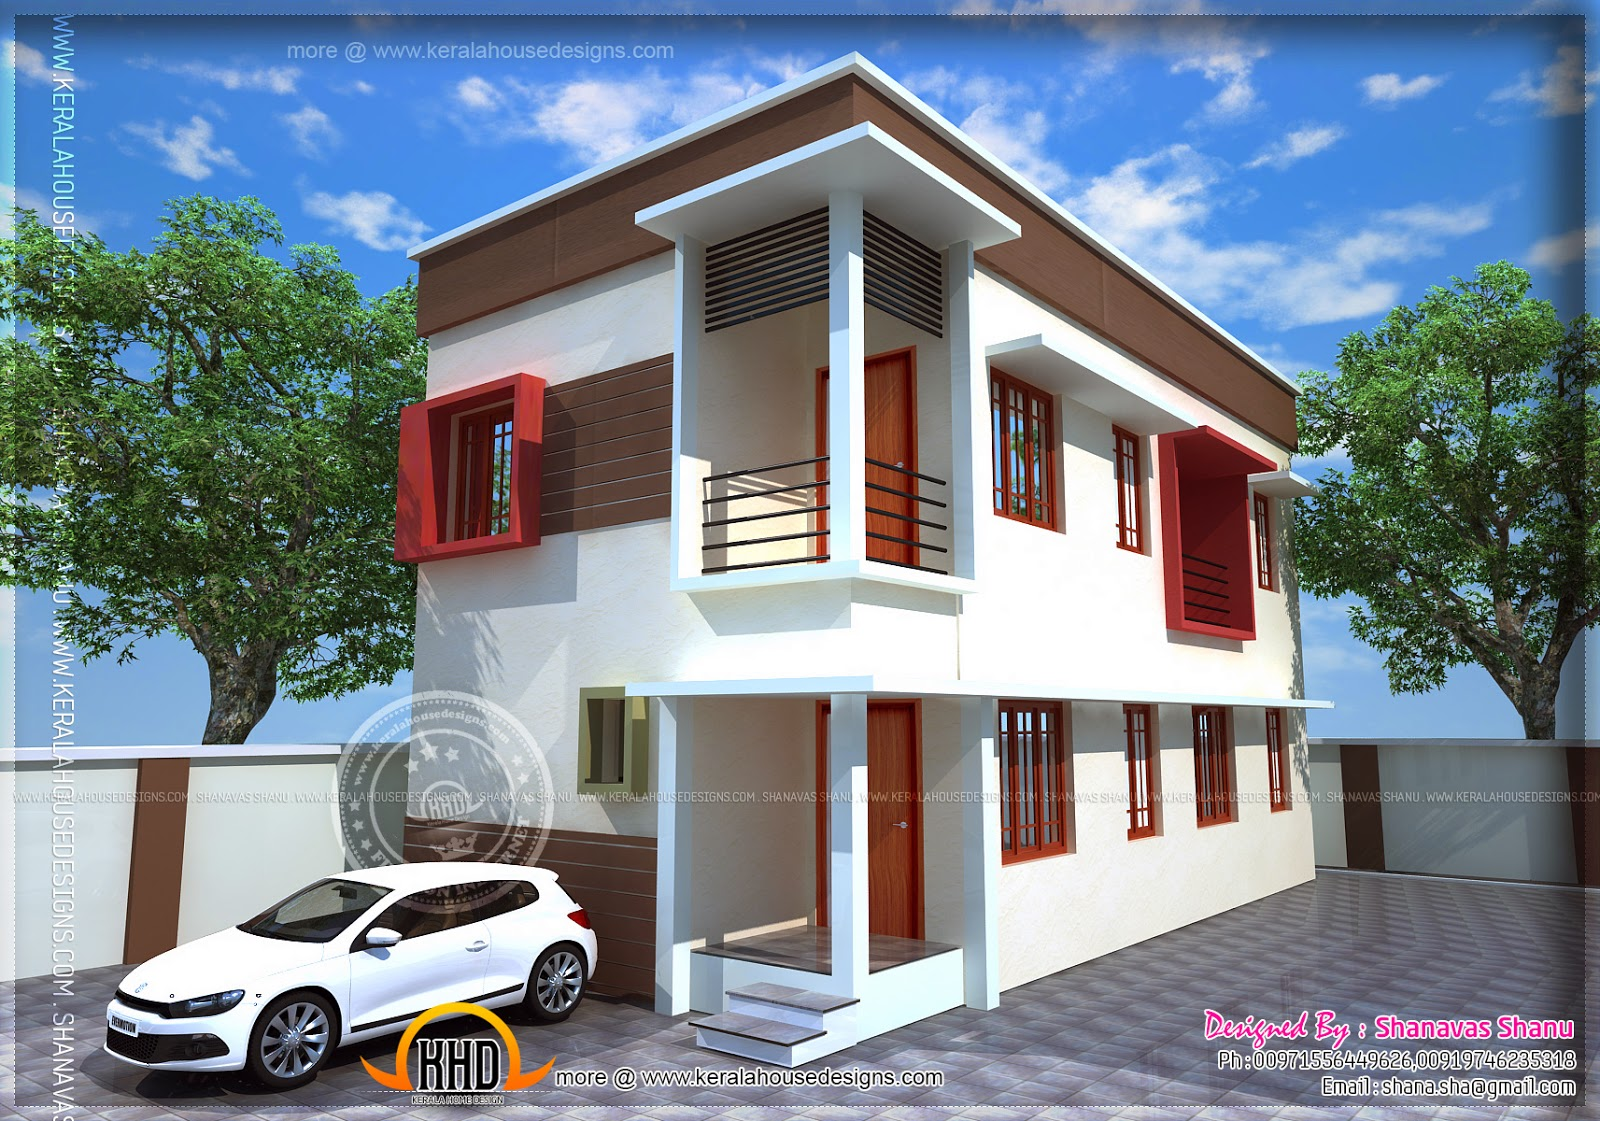 Small plot villa in cents of land kerala home Beautiful homes com